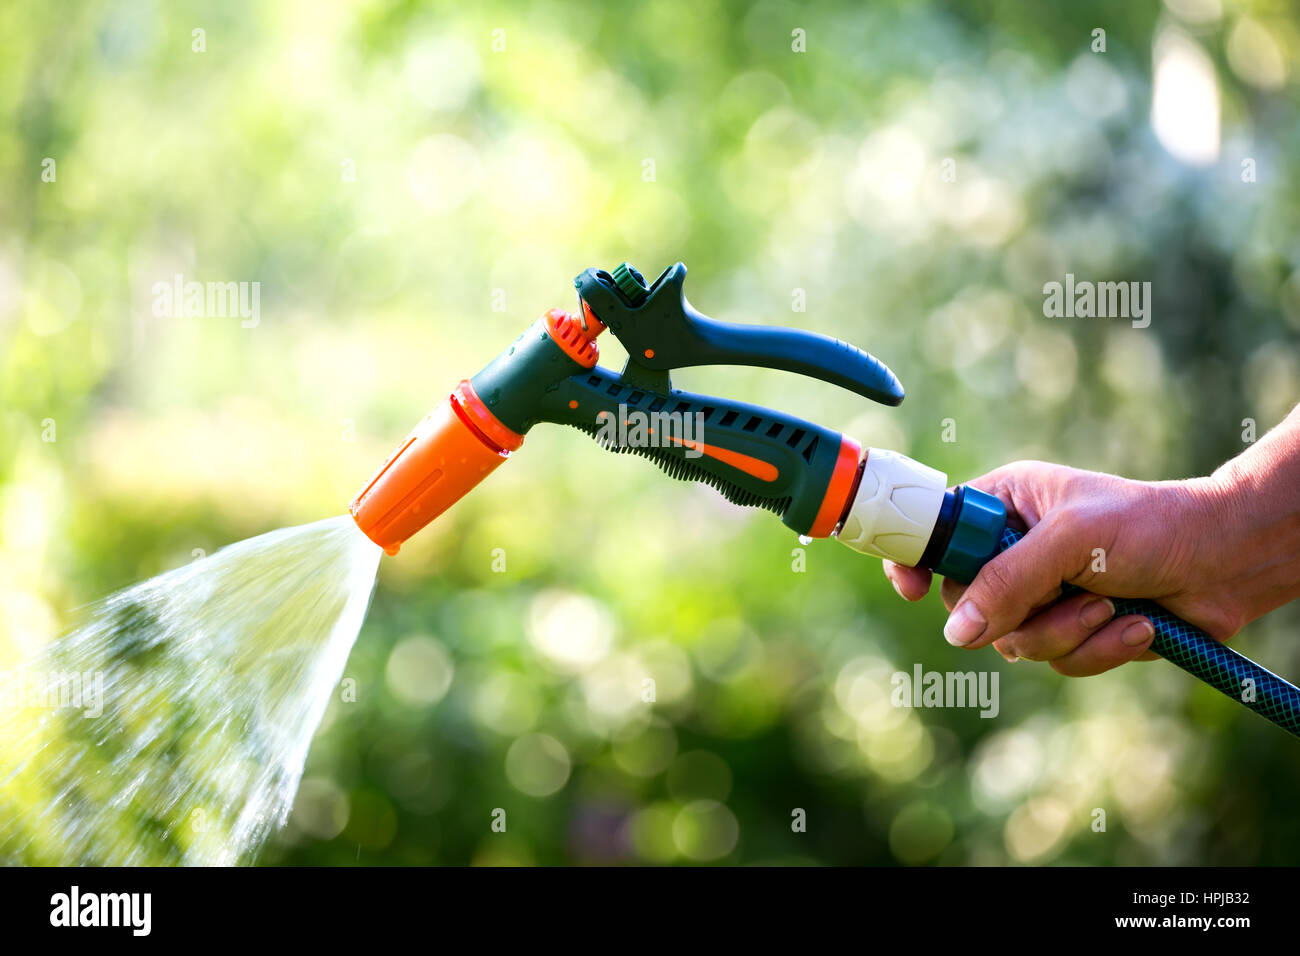 Stock Photo   Woman Hand Holding Garden Hose With Sprayer Nozzle Watering  Lawn